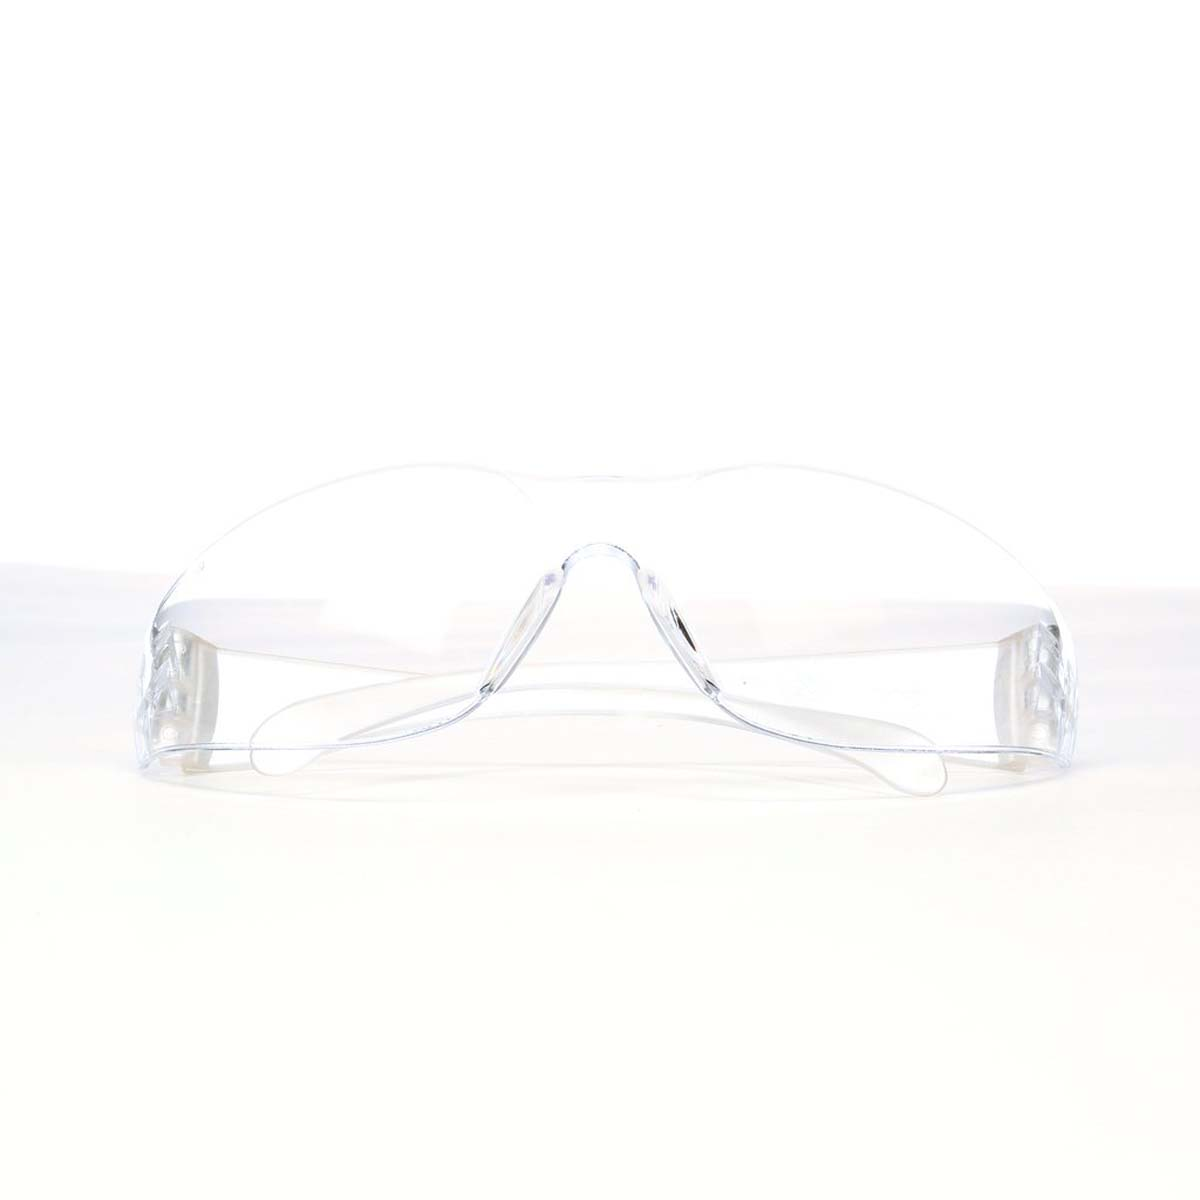 3M Virtua Protective Eyewear 11329-00000-20 Clear Anti-Fog Lens, Clear Temple